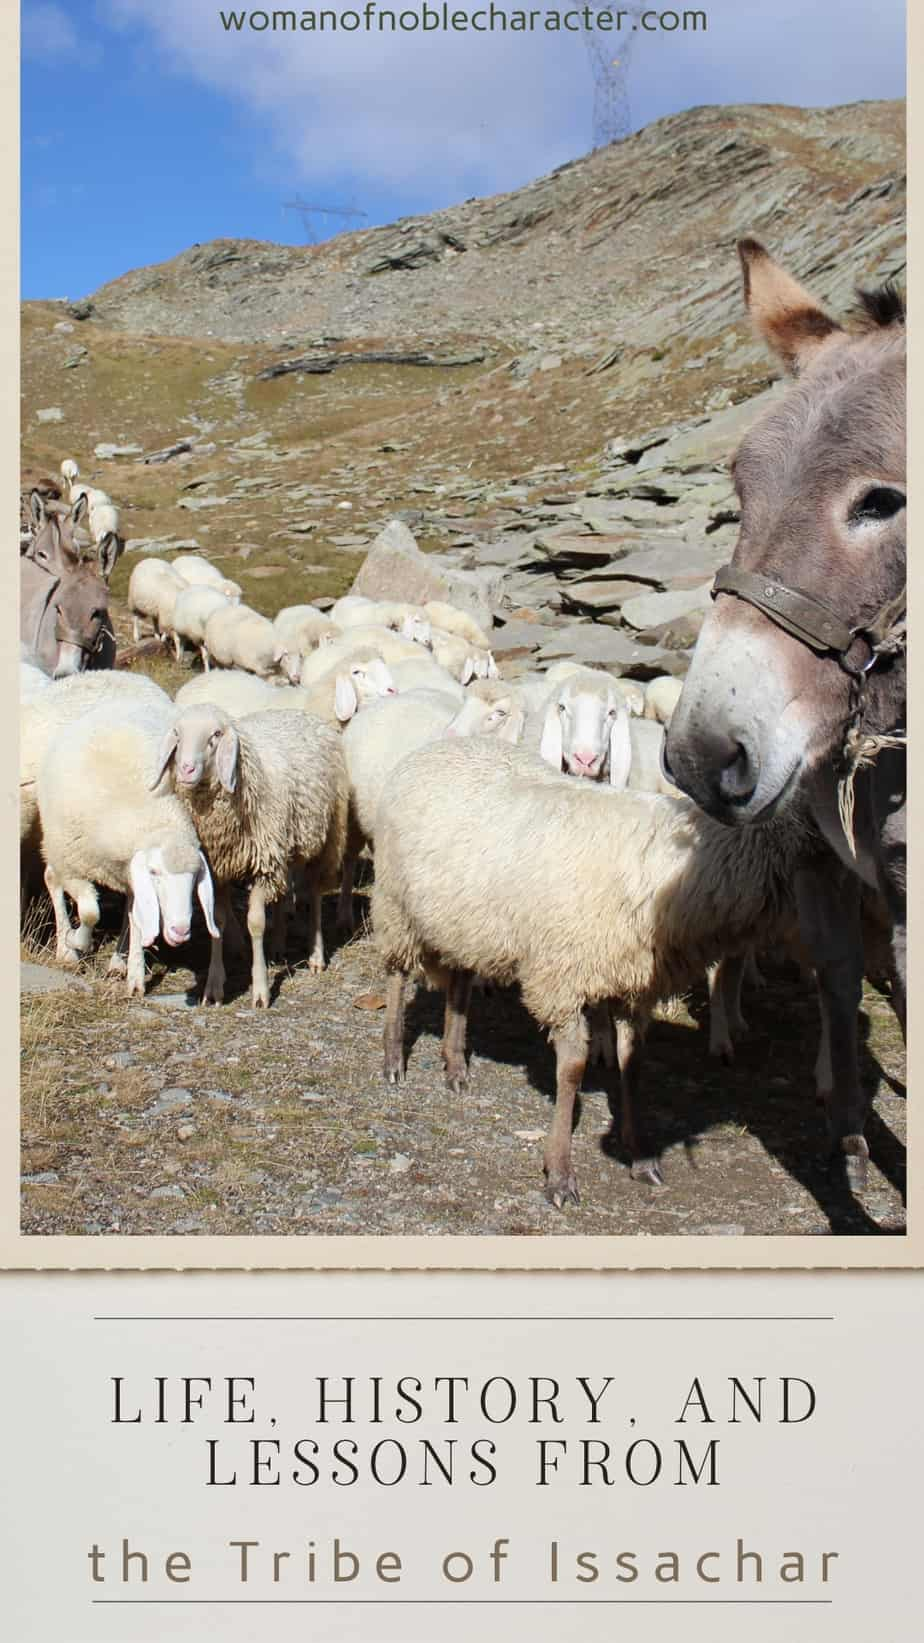 An image of a donkey surrounded by a lot of sheep with an overlay of text that says,